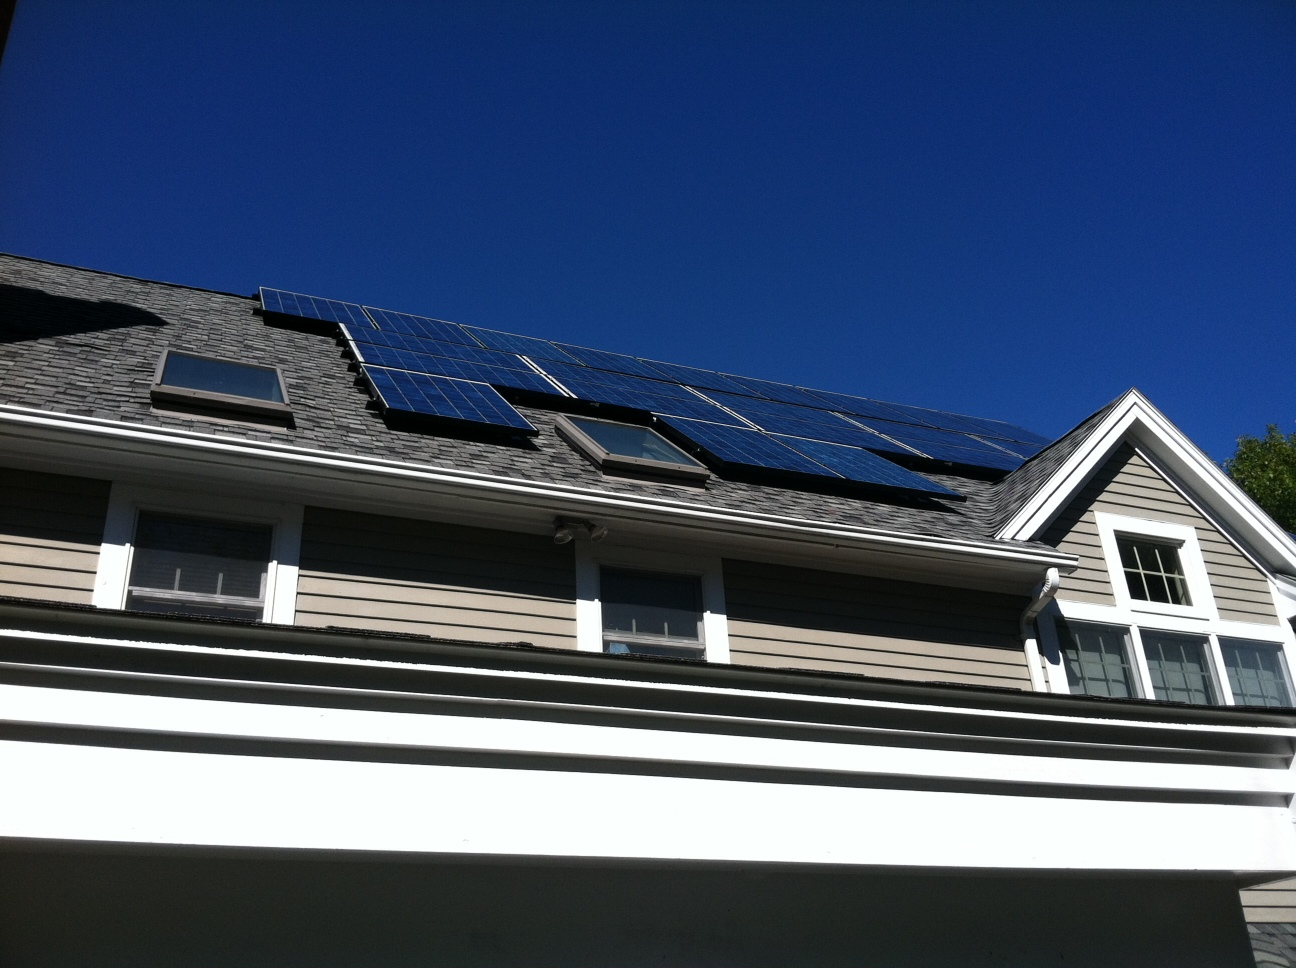 Solar electricity keeps humming at my house